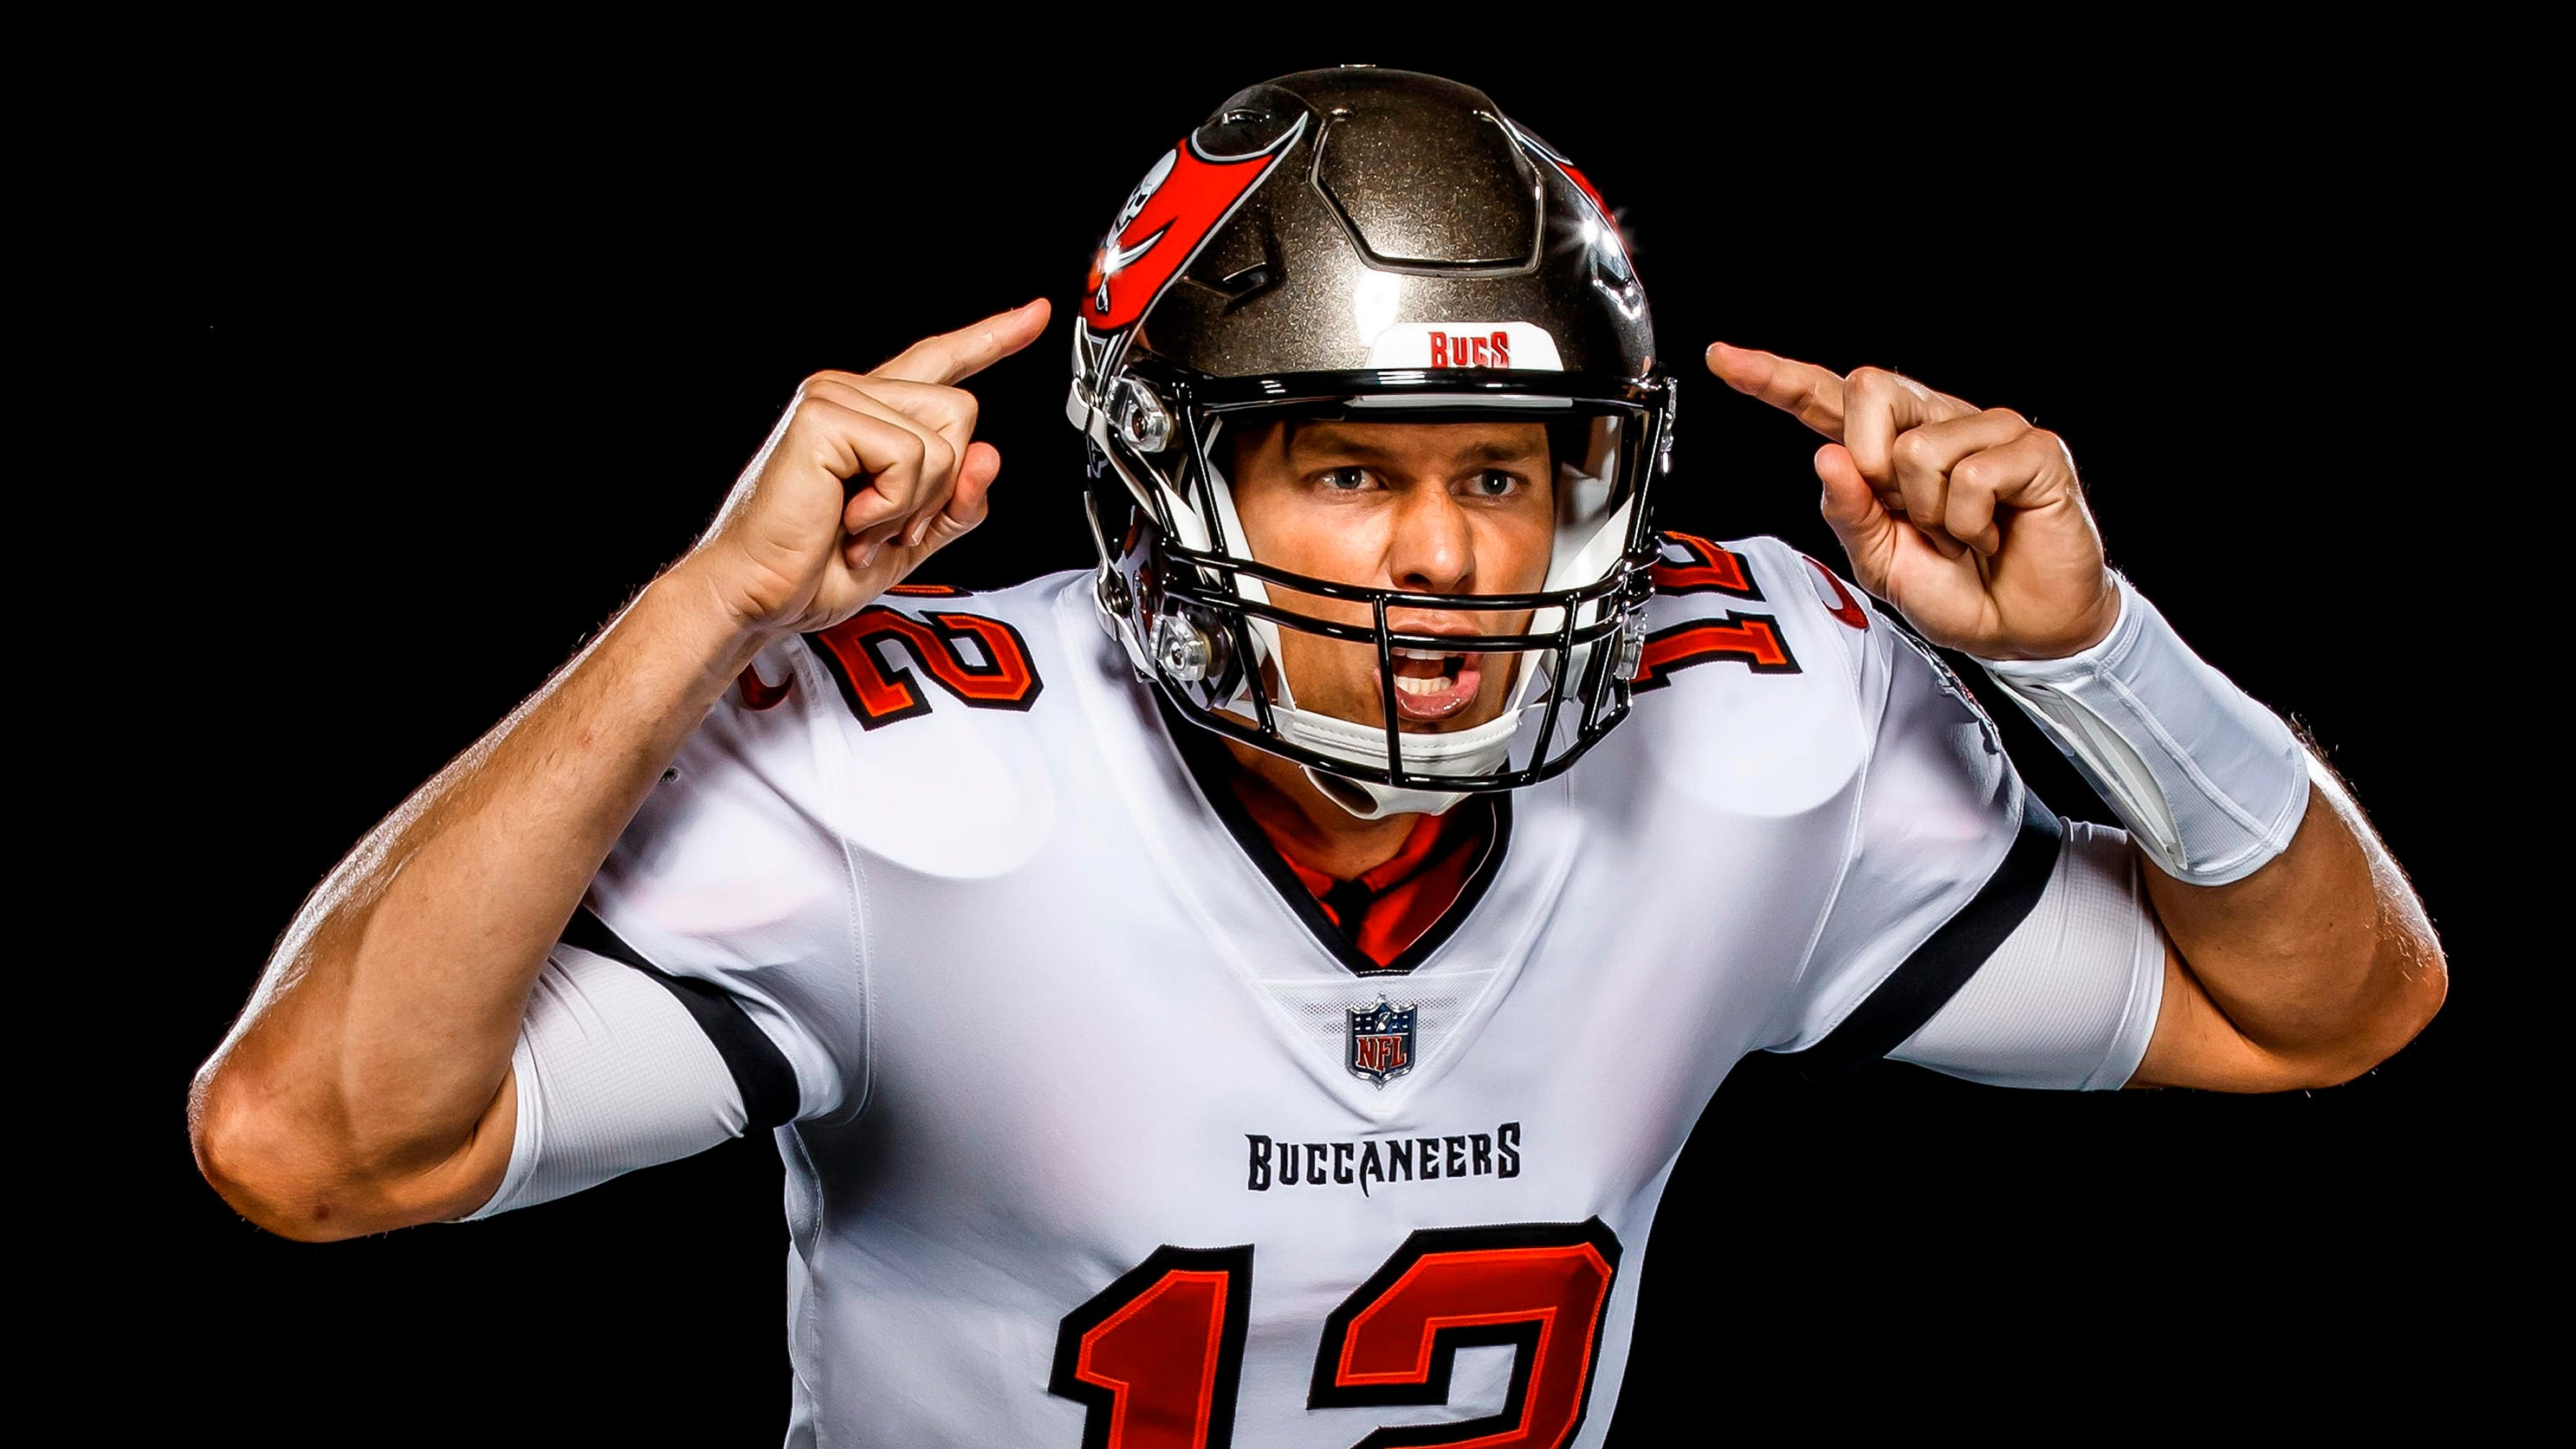 Tom Brady: Buccaneers release first photos of QB in new uniform